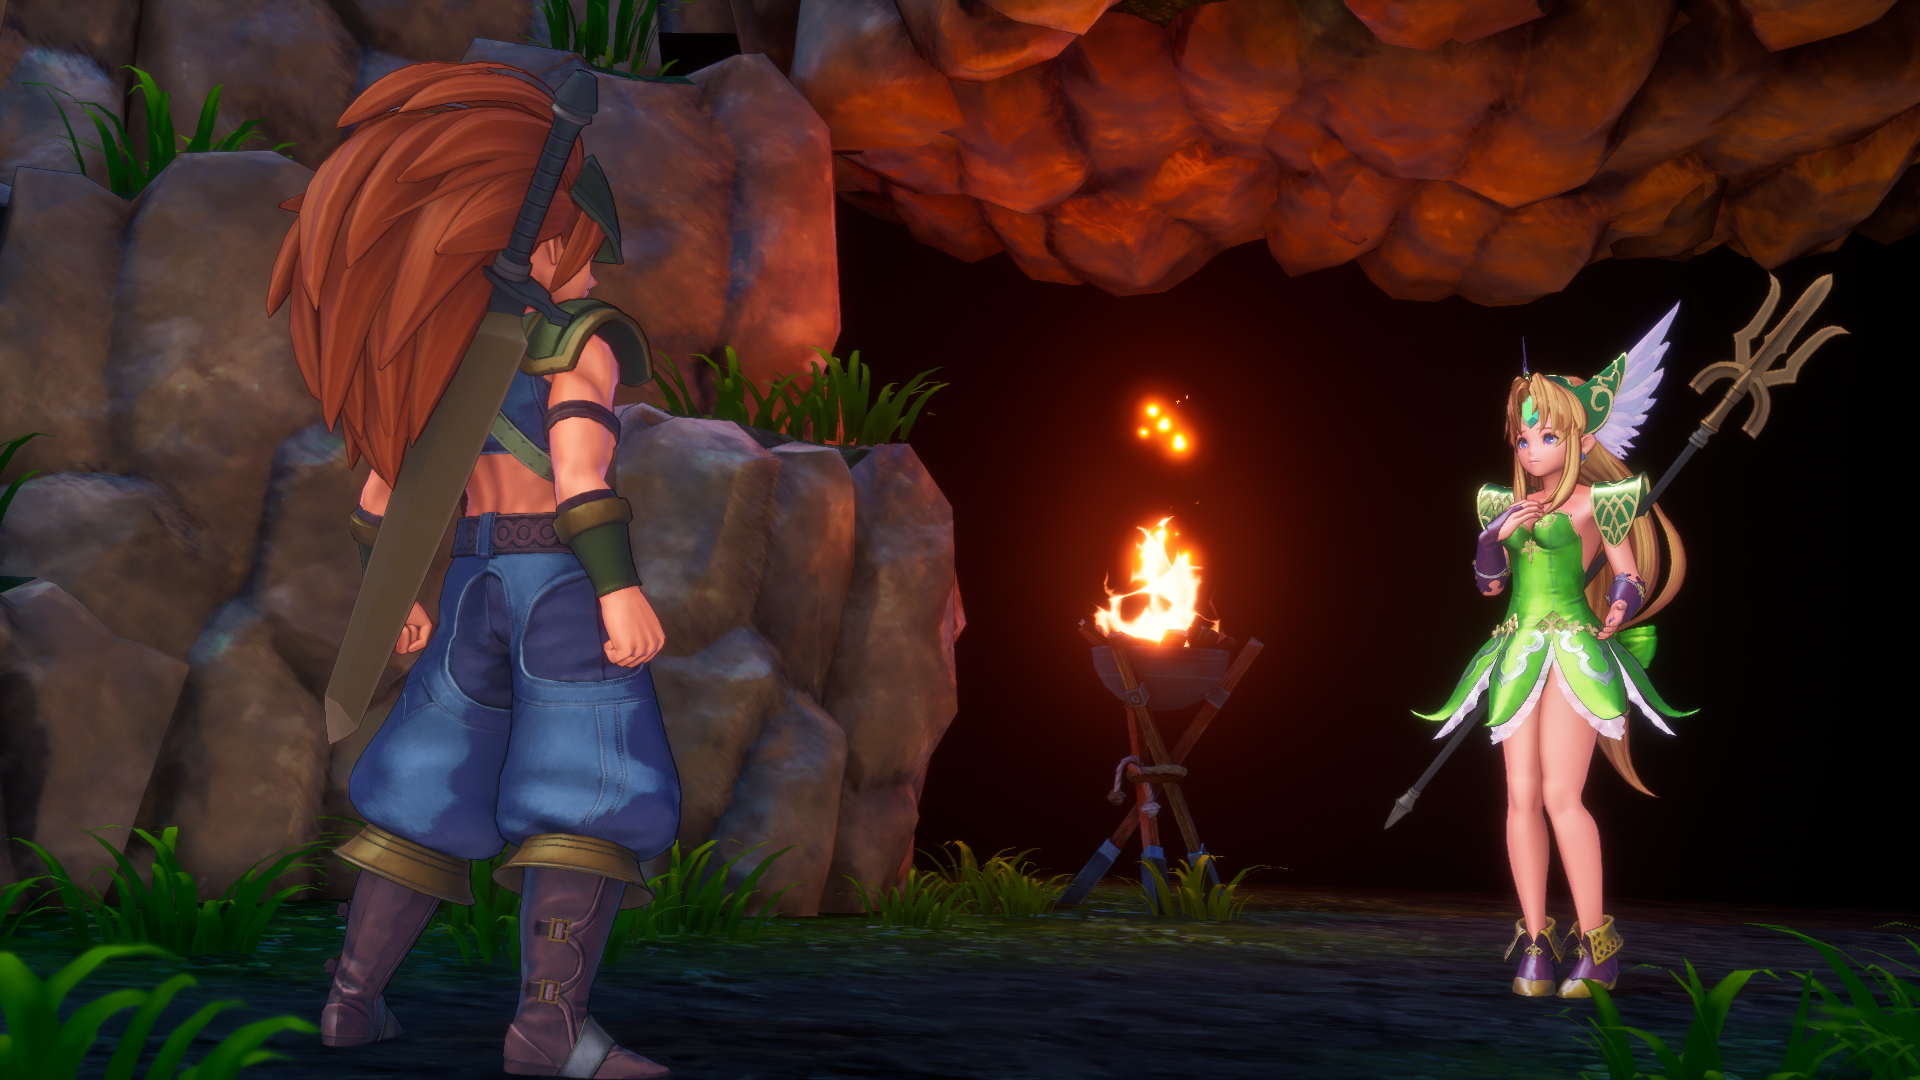 Trials of Mana - Which character do I choose